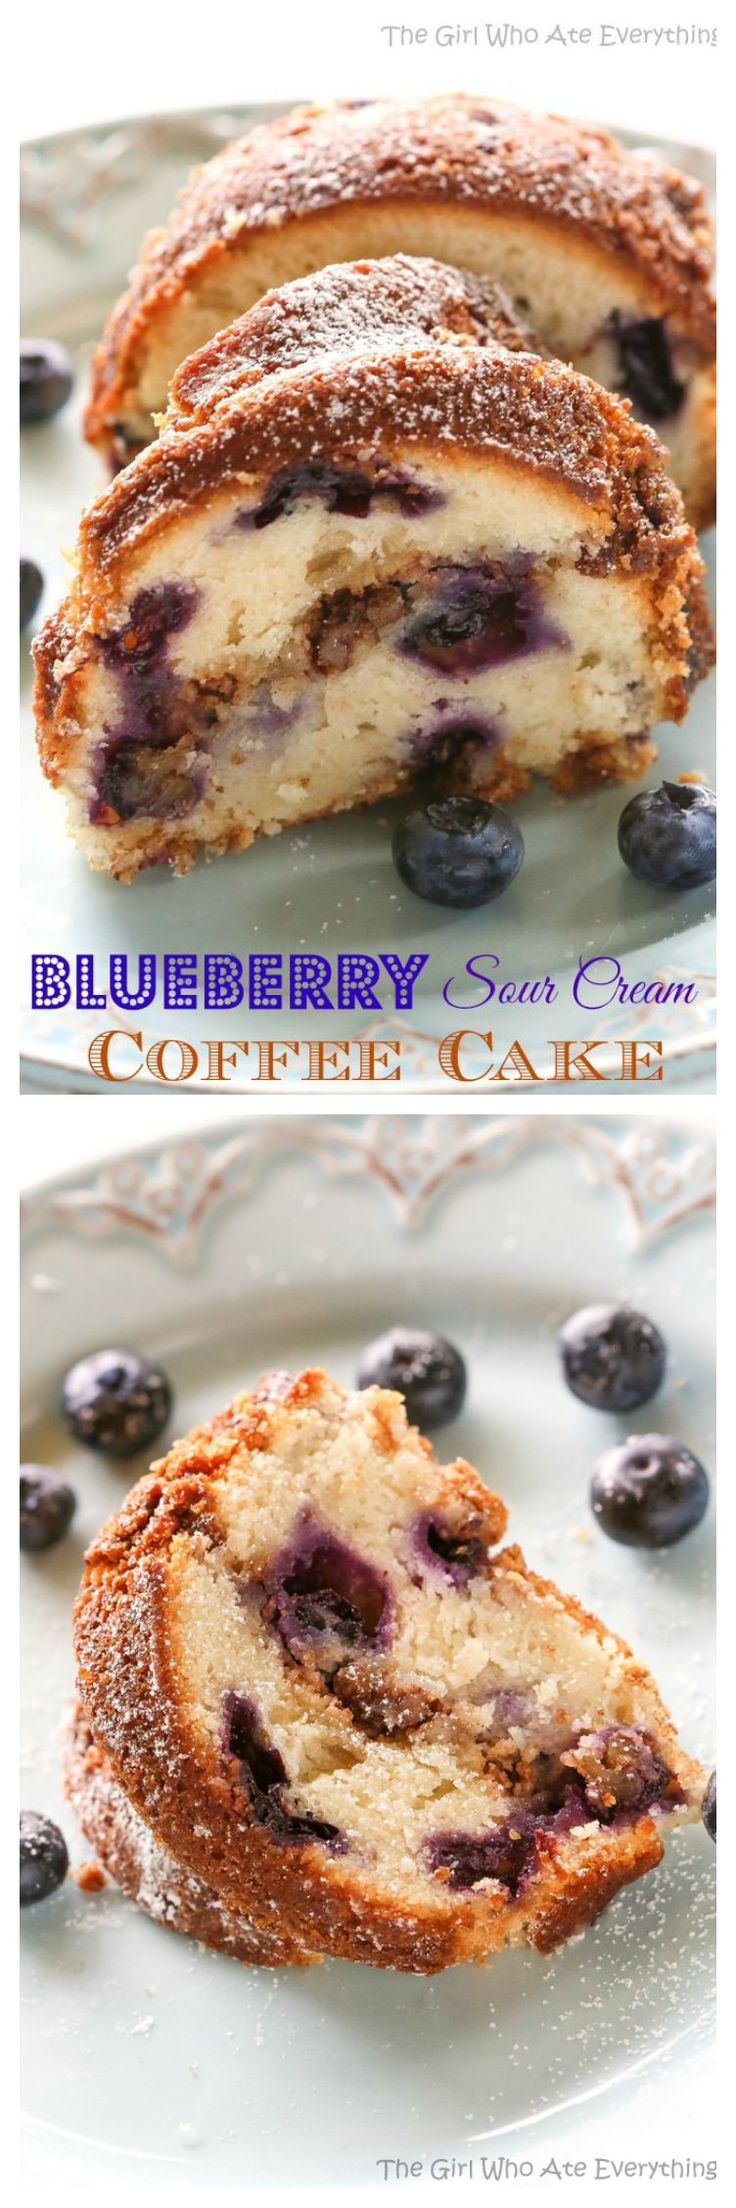 Are you ready for the moistest, dense and rich Blueberry Sour Cream Coffee Cake with a cinnamon brown sugar filling? This is one decadent breakfast or brunch treat! the-girl-who-ate-everything.com